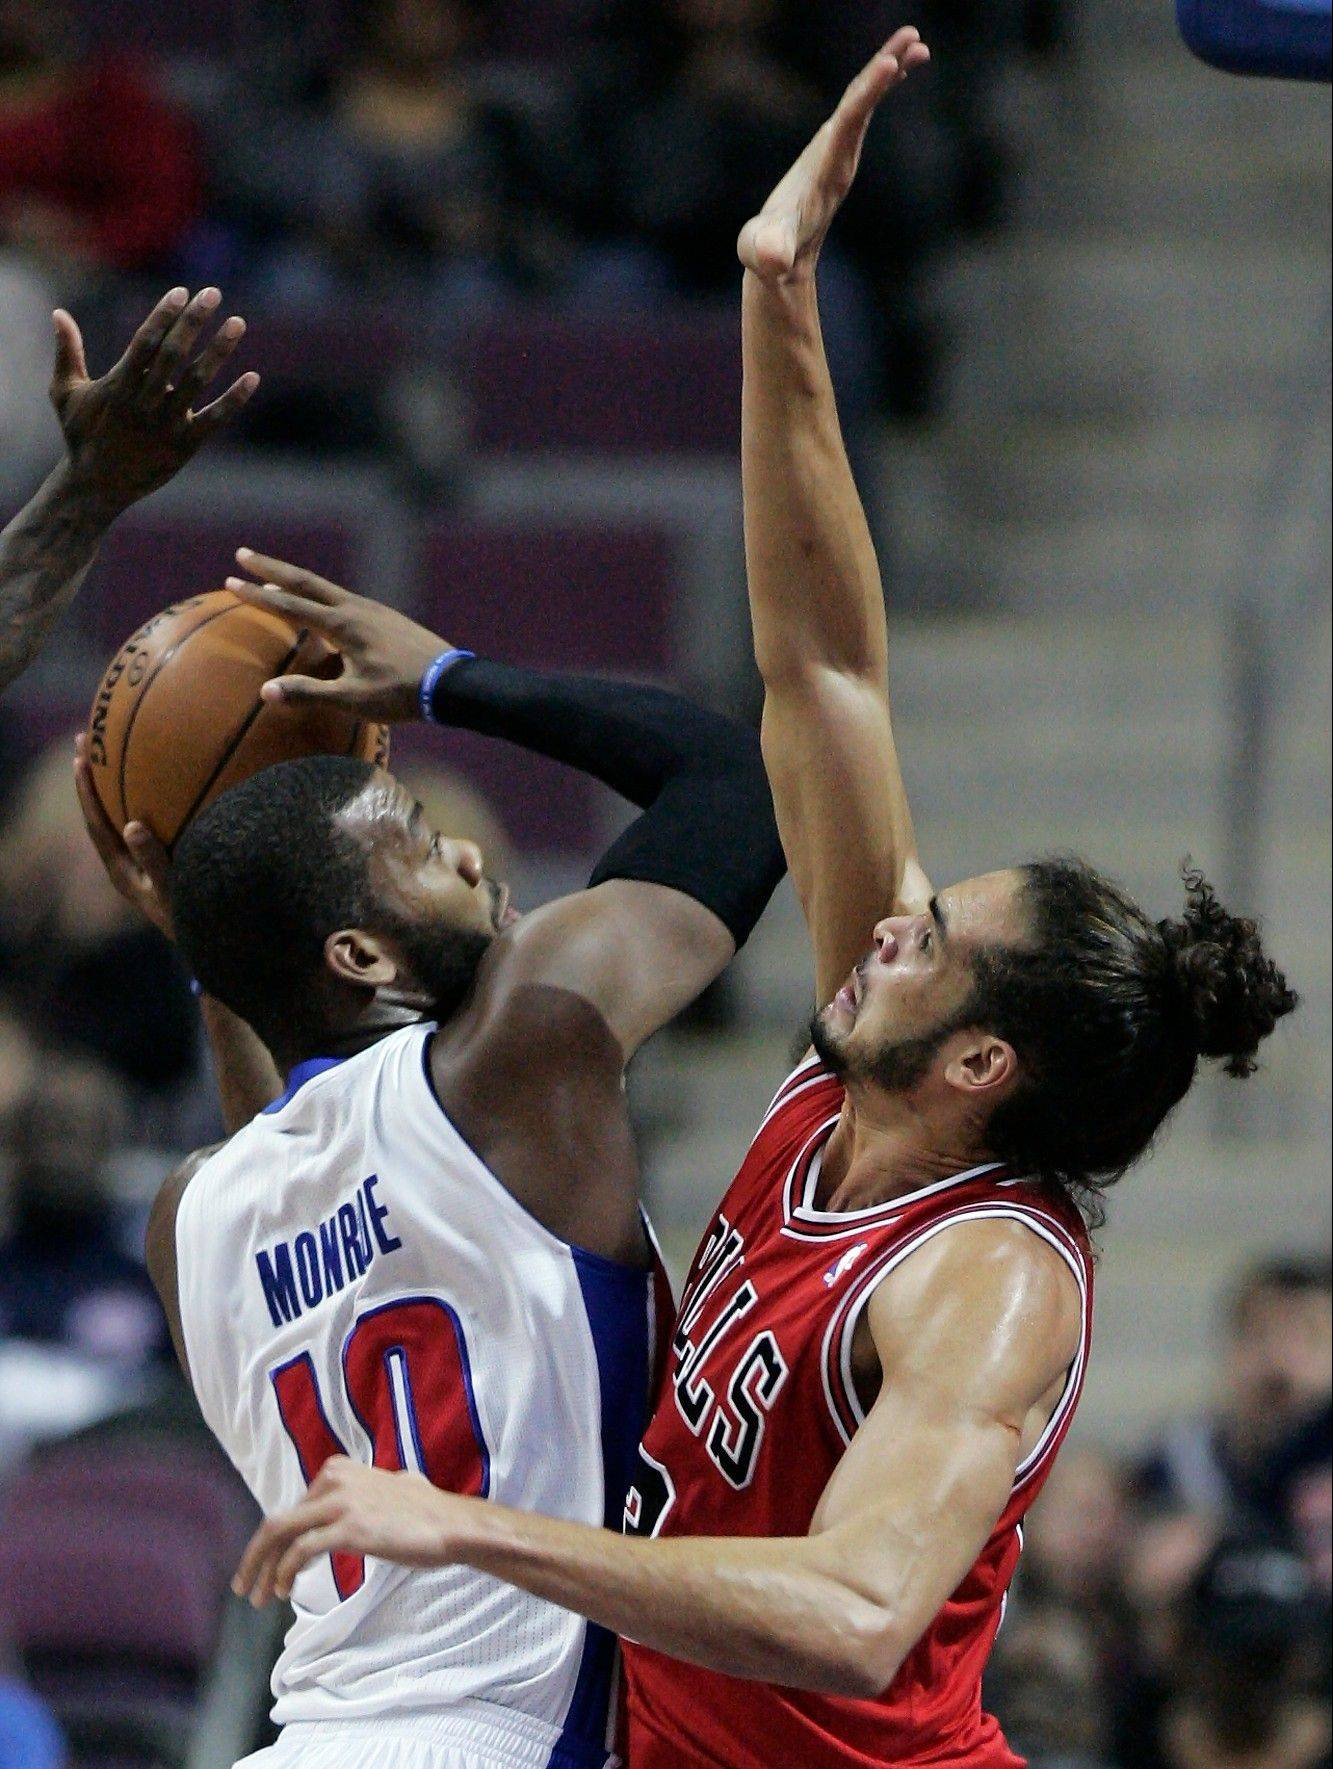 The Pistons' Greg Monroe runs into defensive pressure from the Bulls' Joakim Noah on Friday.